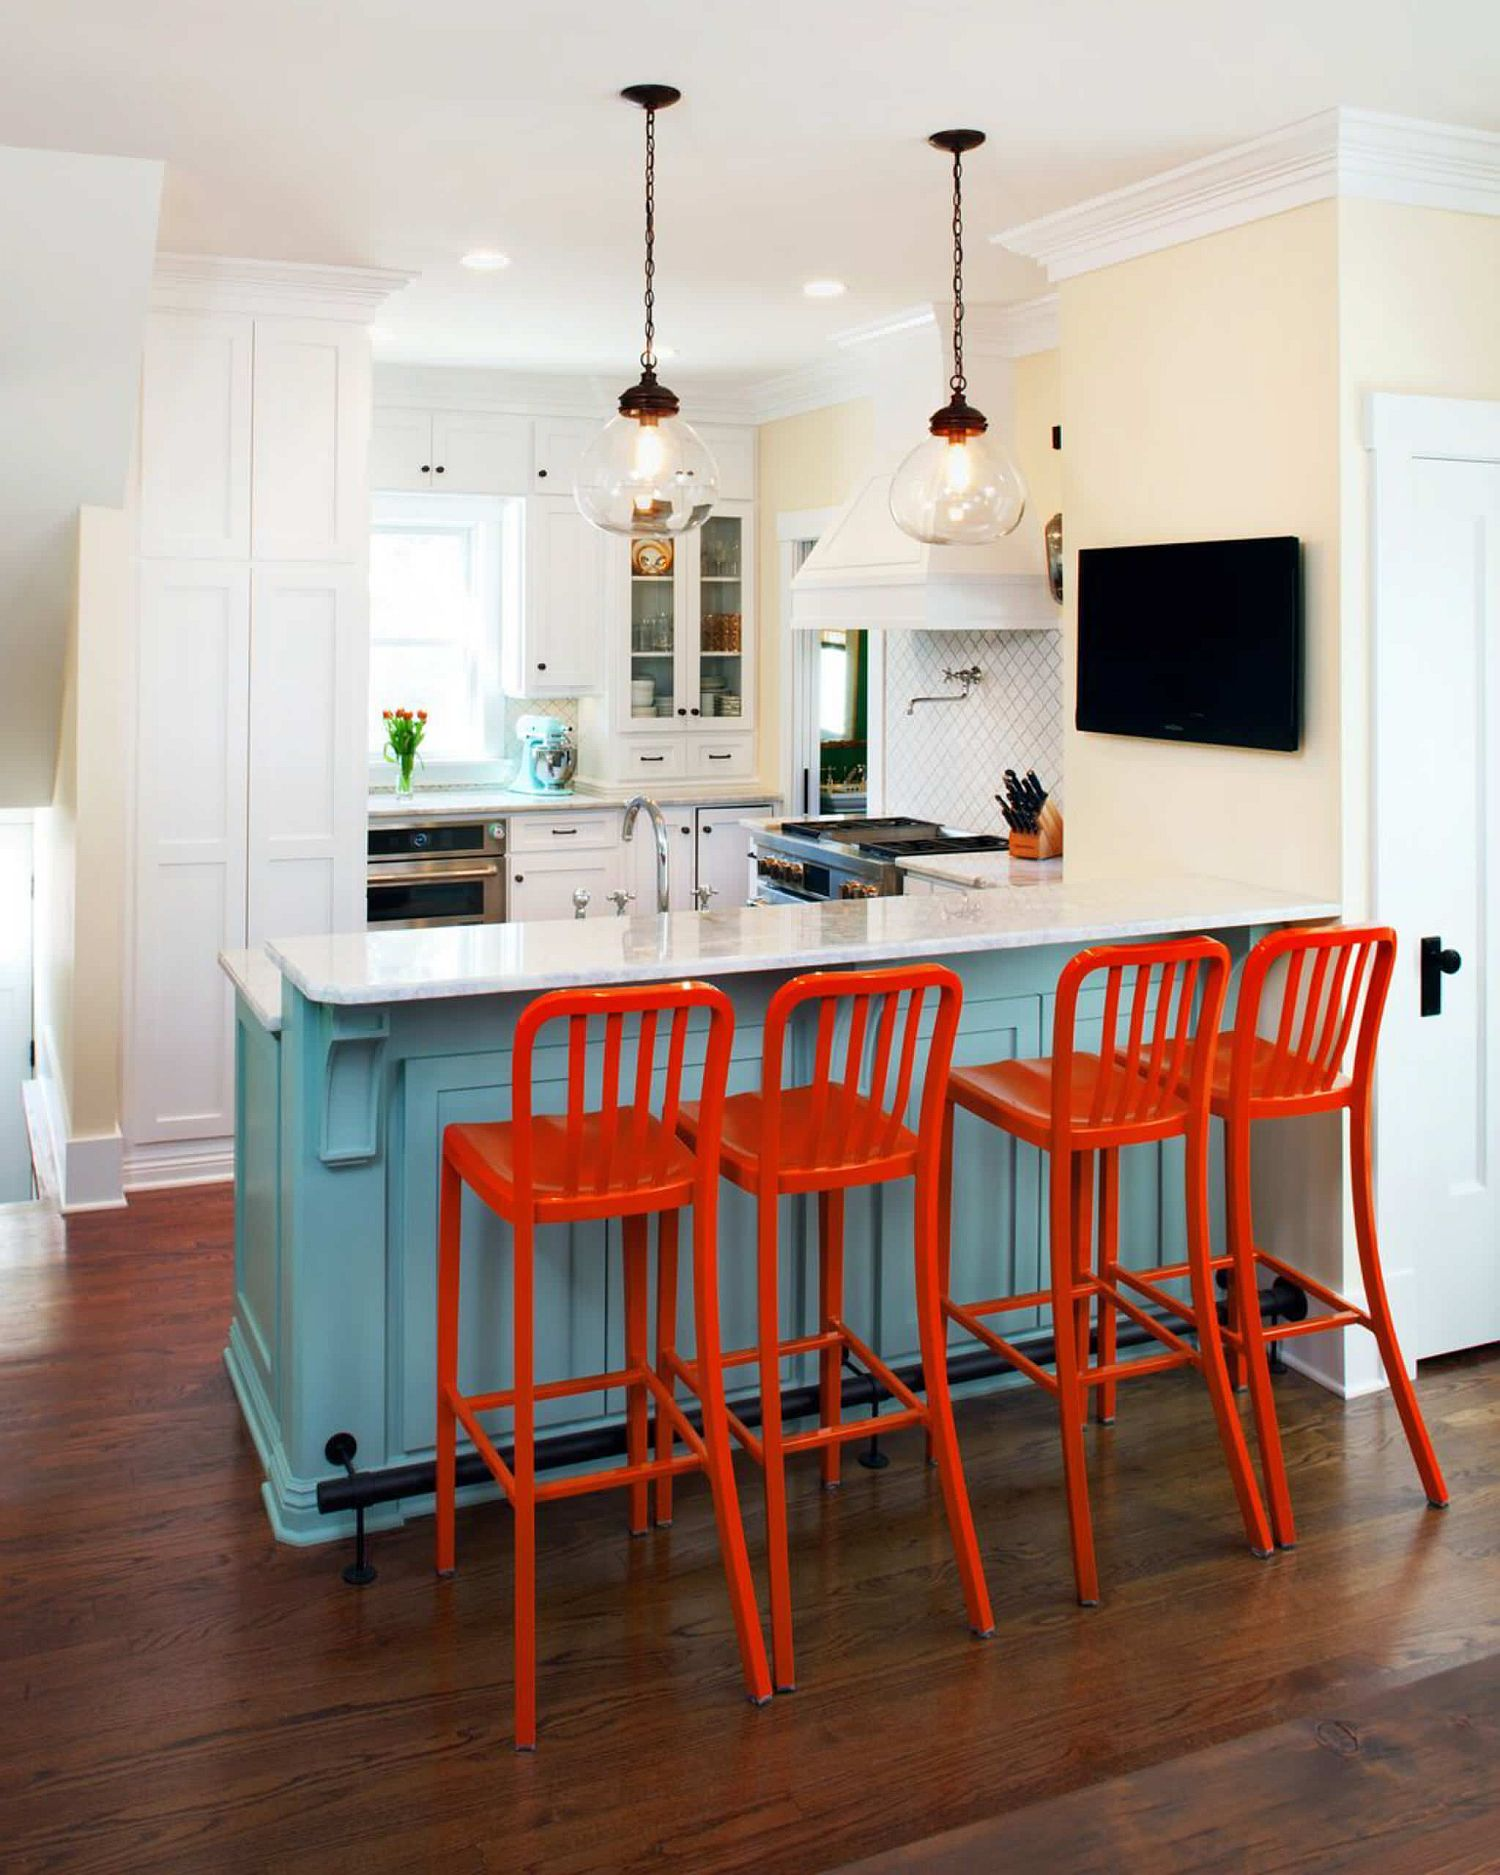 Create a lovely focal point at the breakfast bar with bright red bar stools